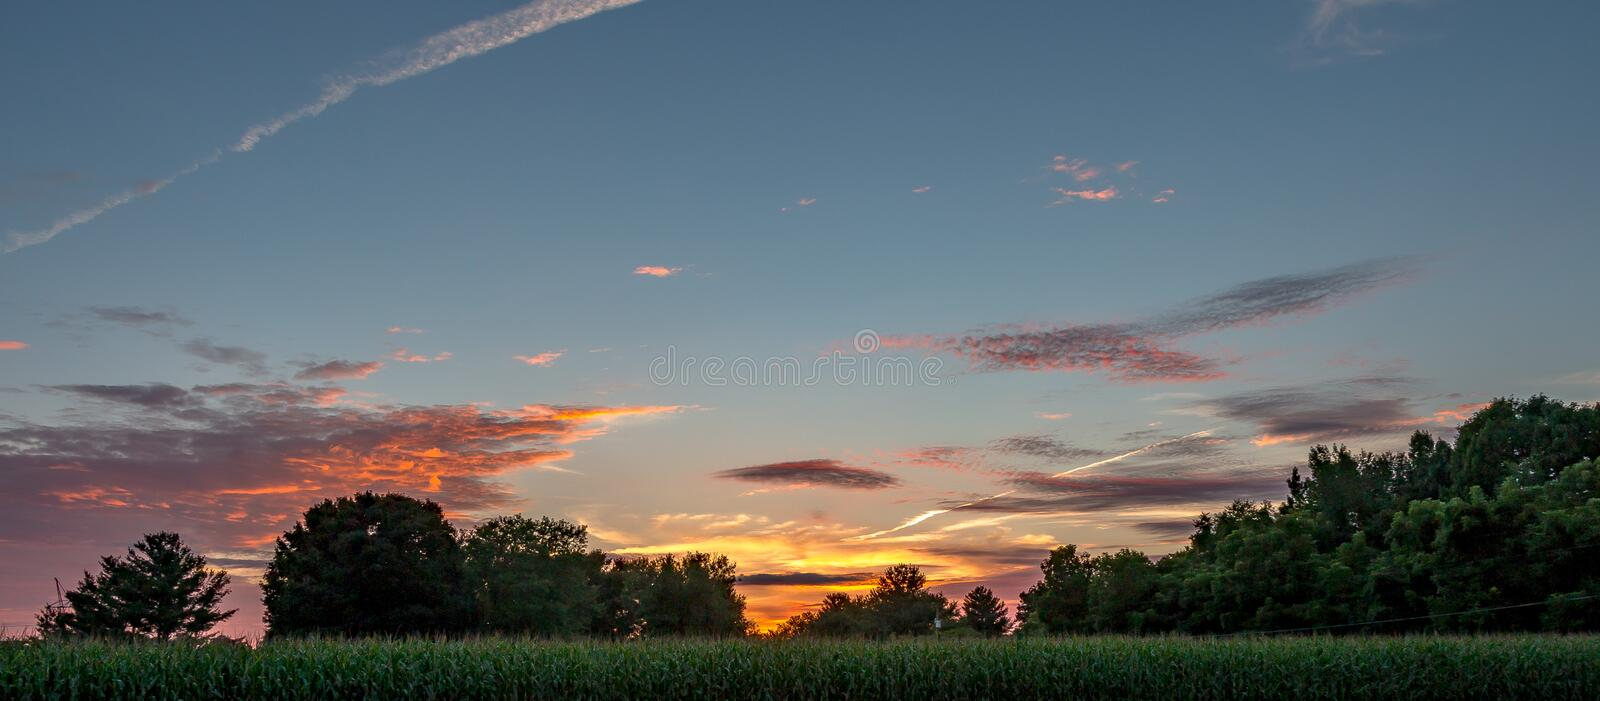 Country Sunsets are works of art royalty free stock image